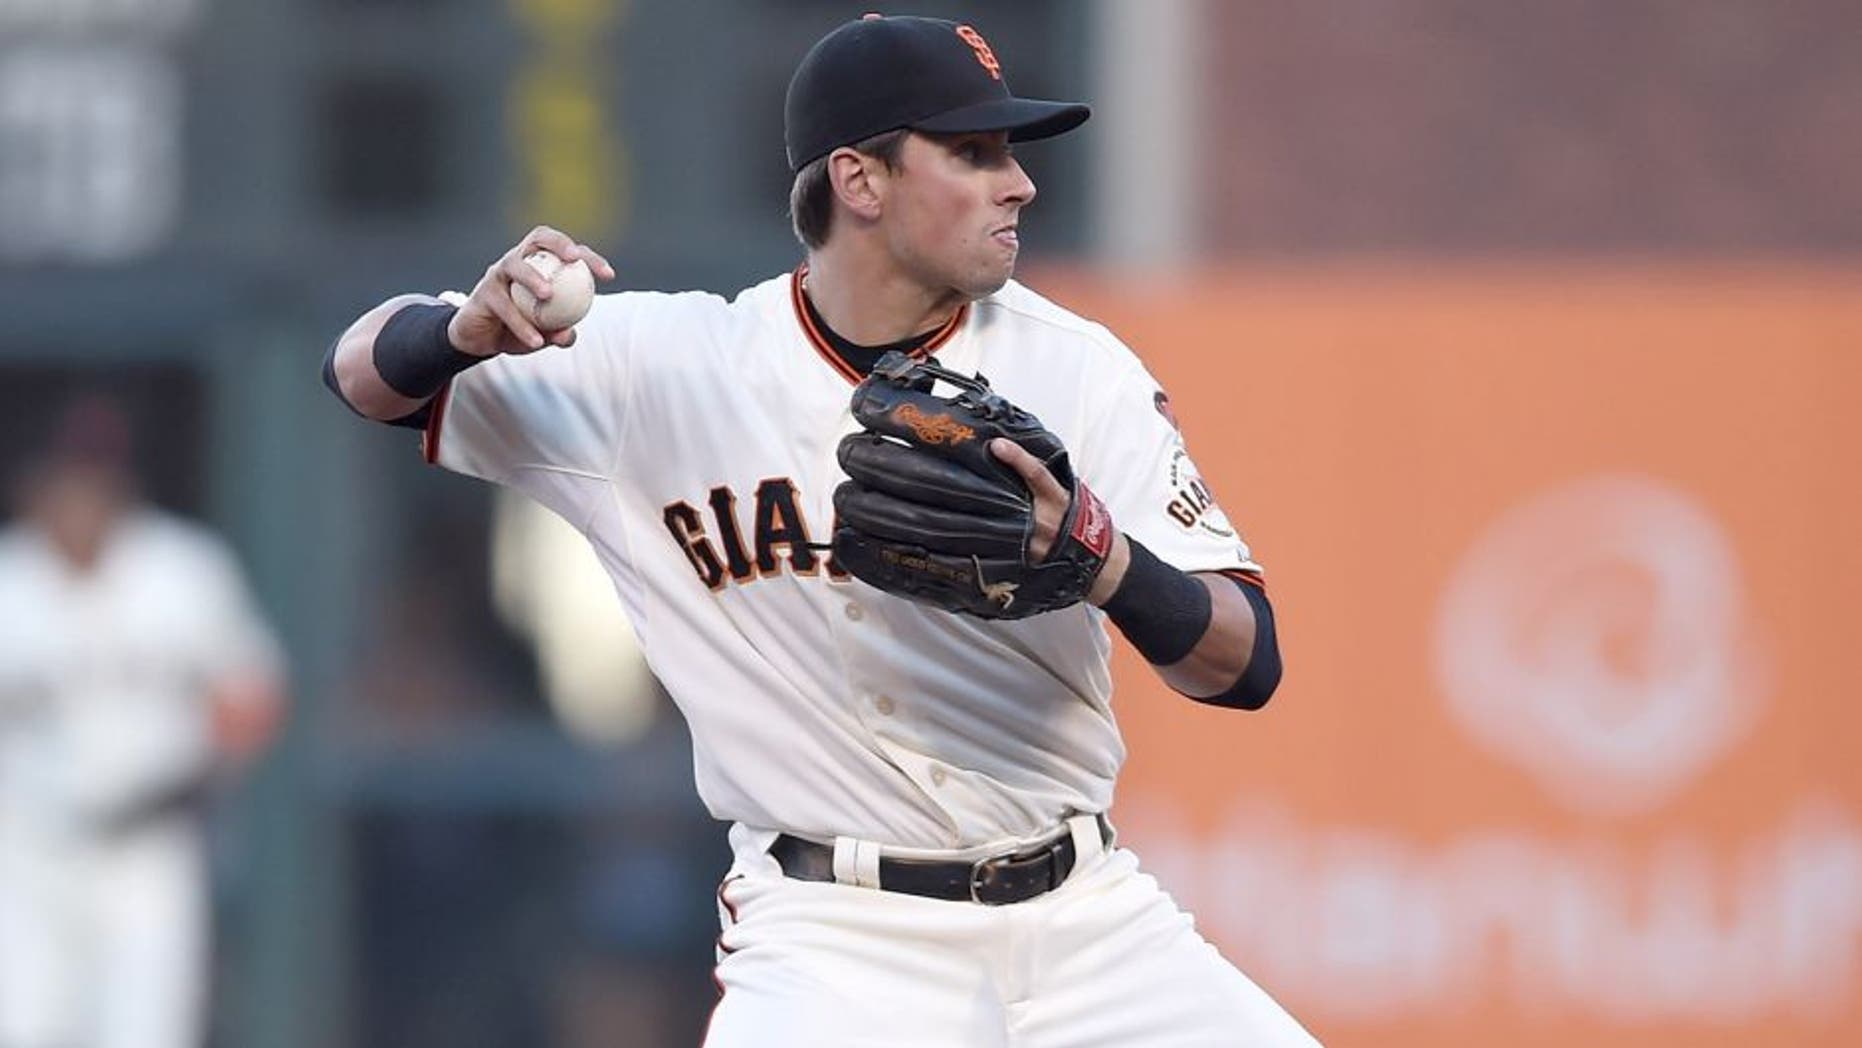 SAN FRANCISCO, CA - JULY 27: Joe Panik #12 of the San Francisco Giants looks to throw to first base and complete the double-play against the Milwaukee Brewers in the top of the first inning at AT&T Park on July 27, 2015 in San Francisco, California. (Photo by Thearon W. Henderson/Getty Images)